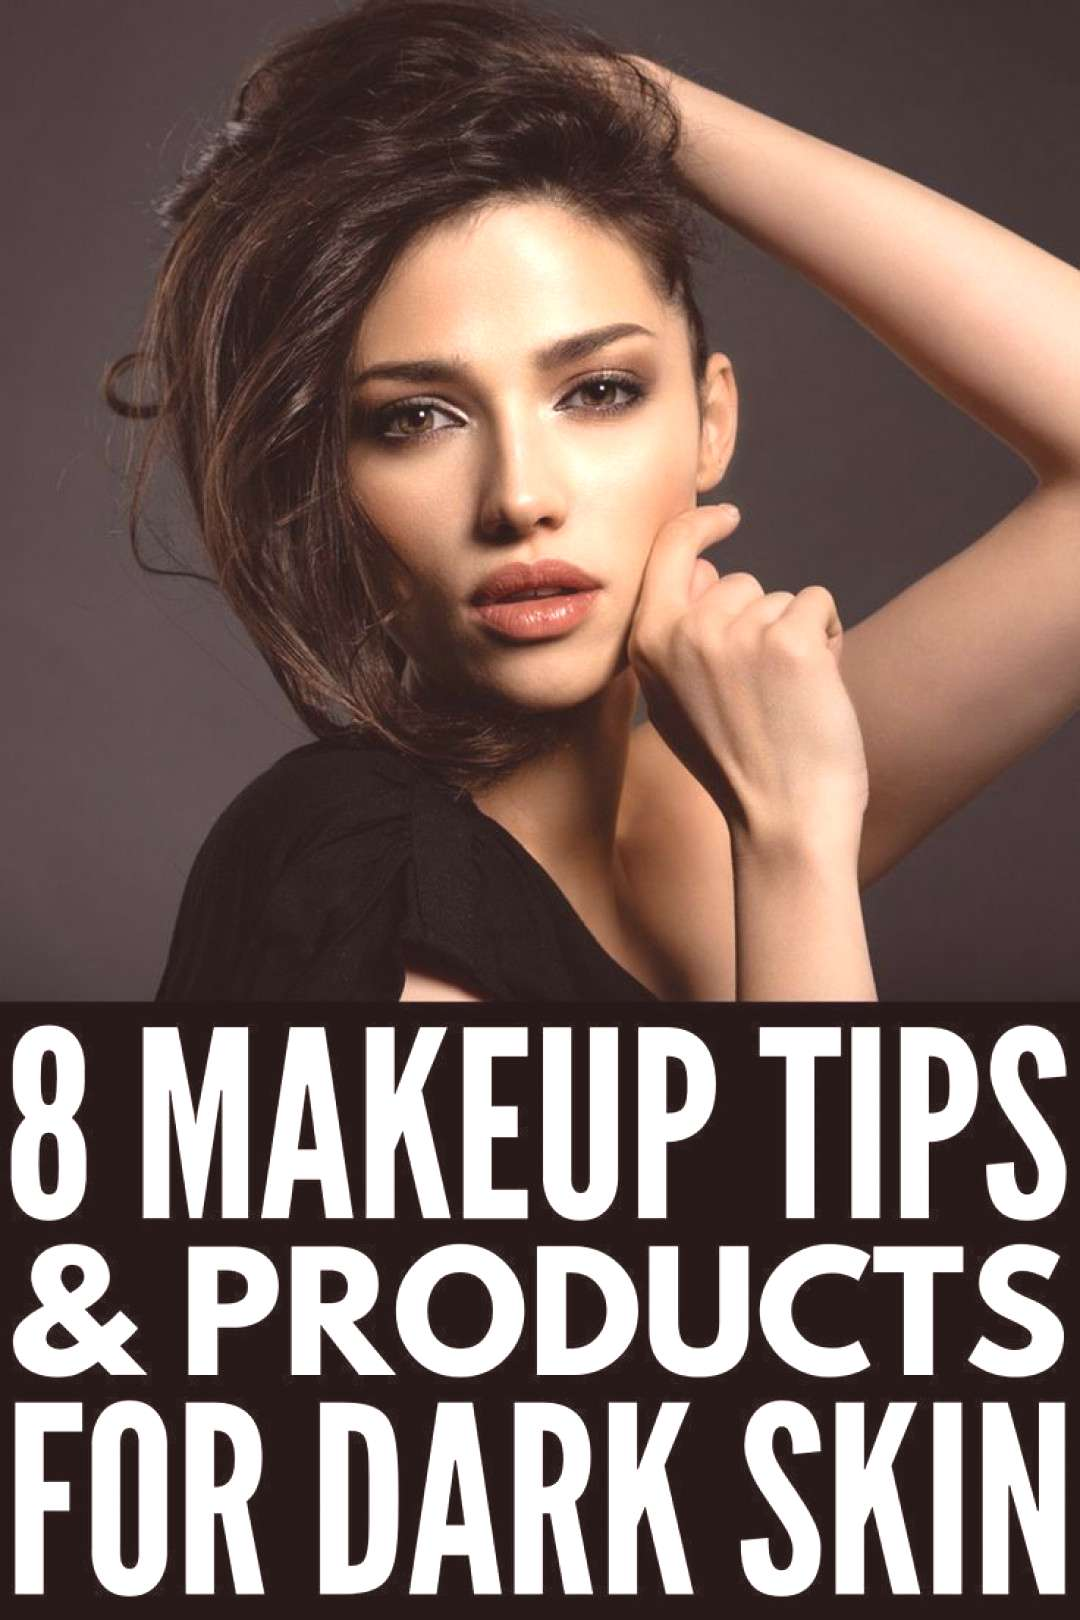 Makeup Tips for Dark Skin | From selecting the right foundation and contouring products, to learnin